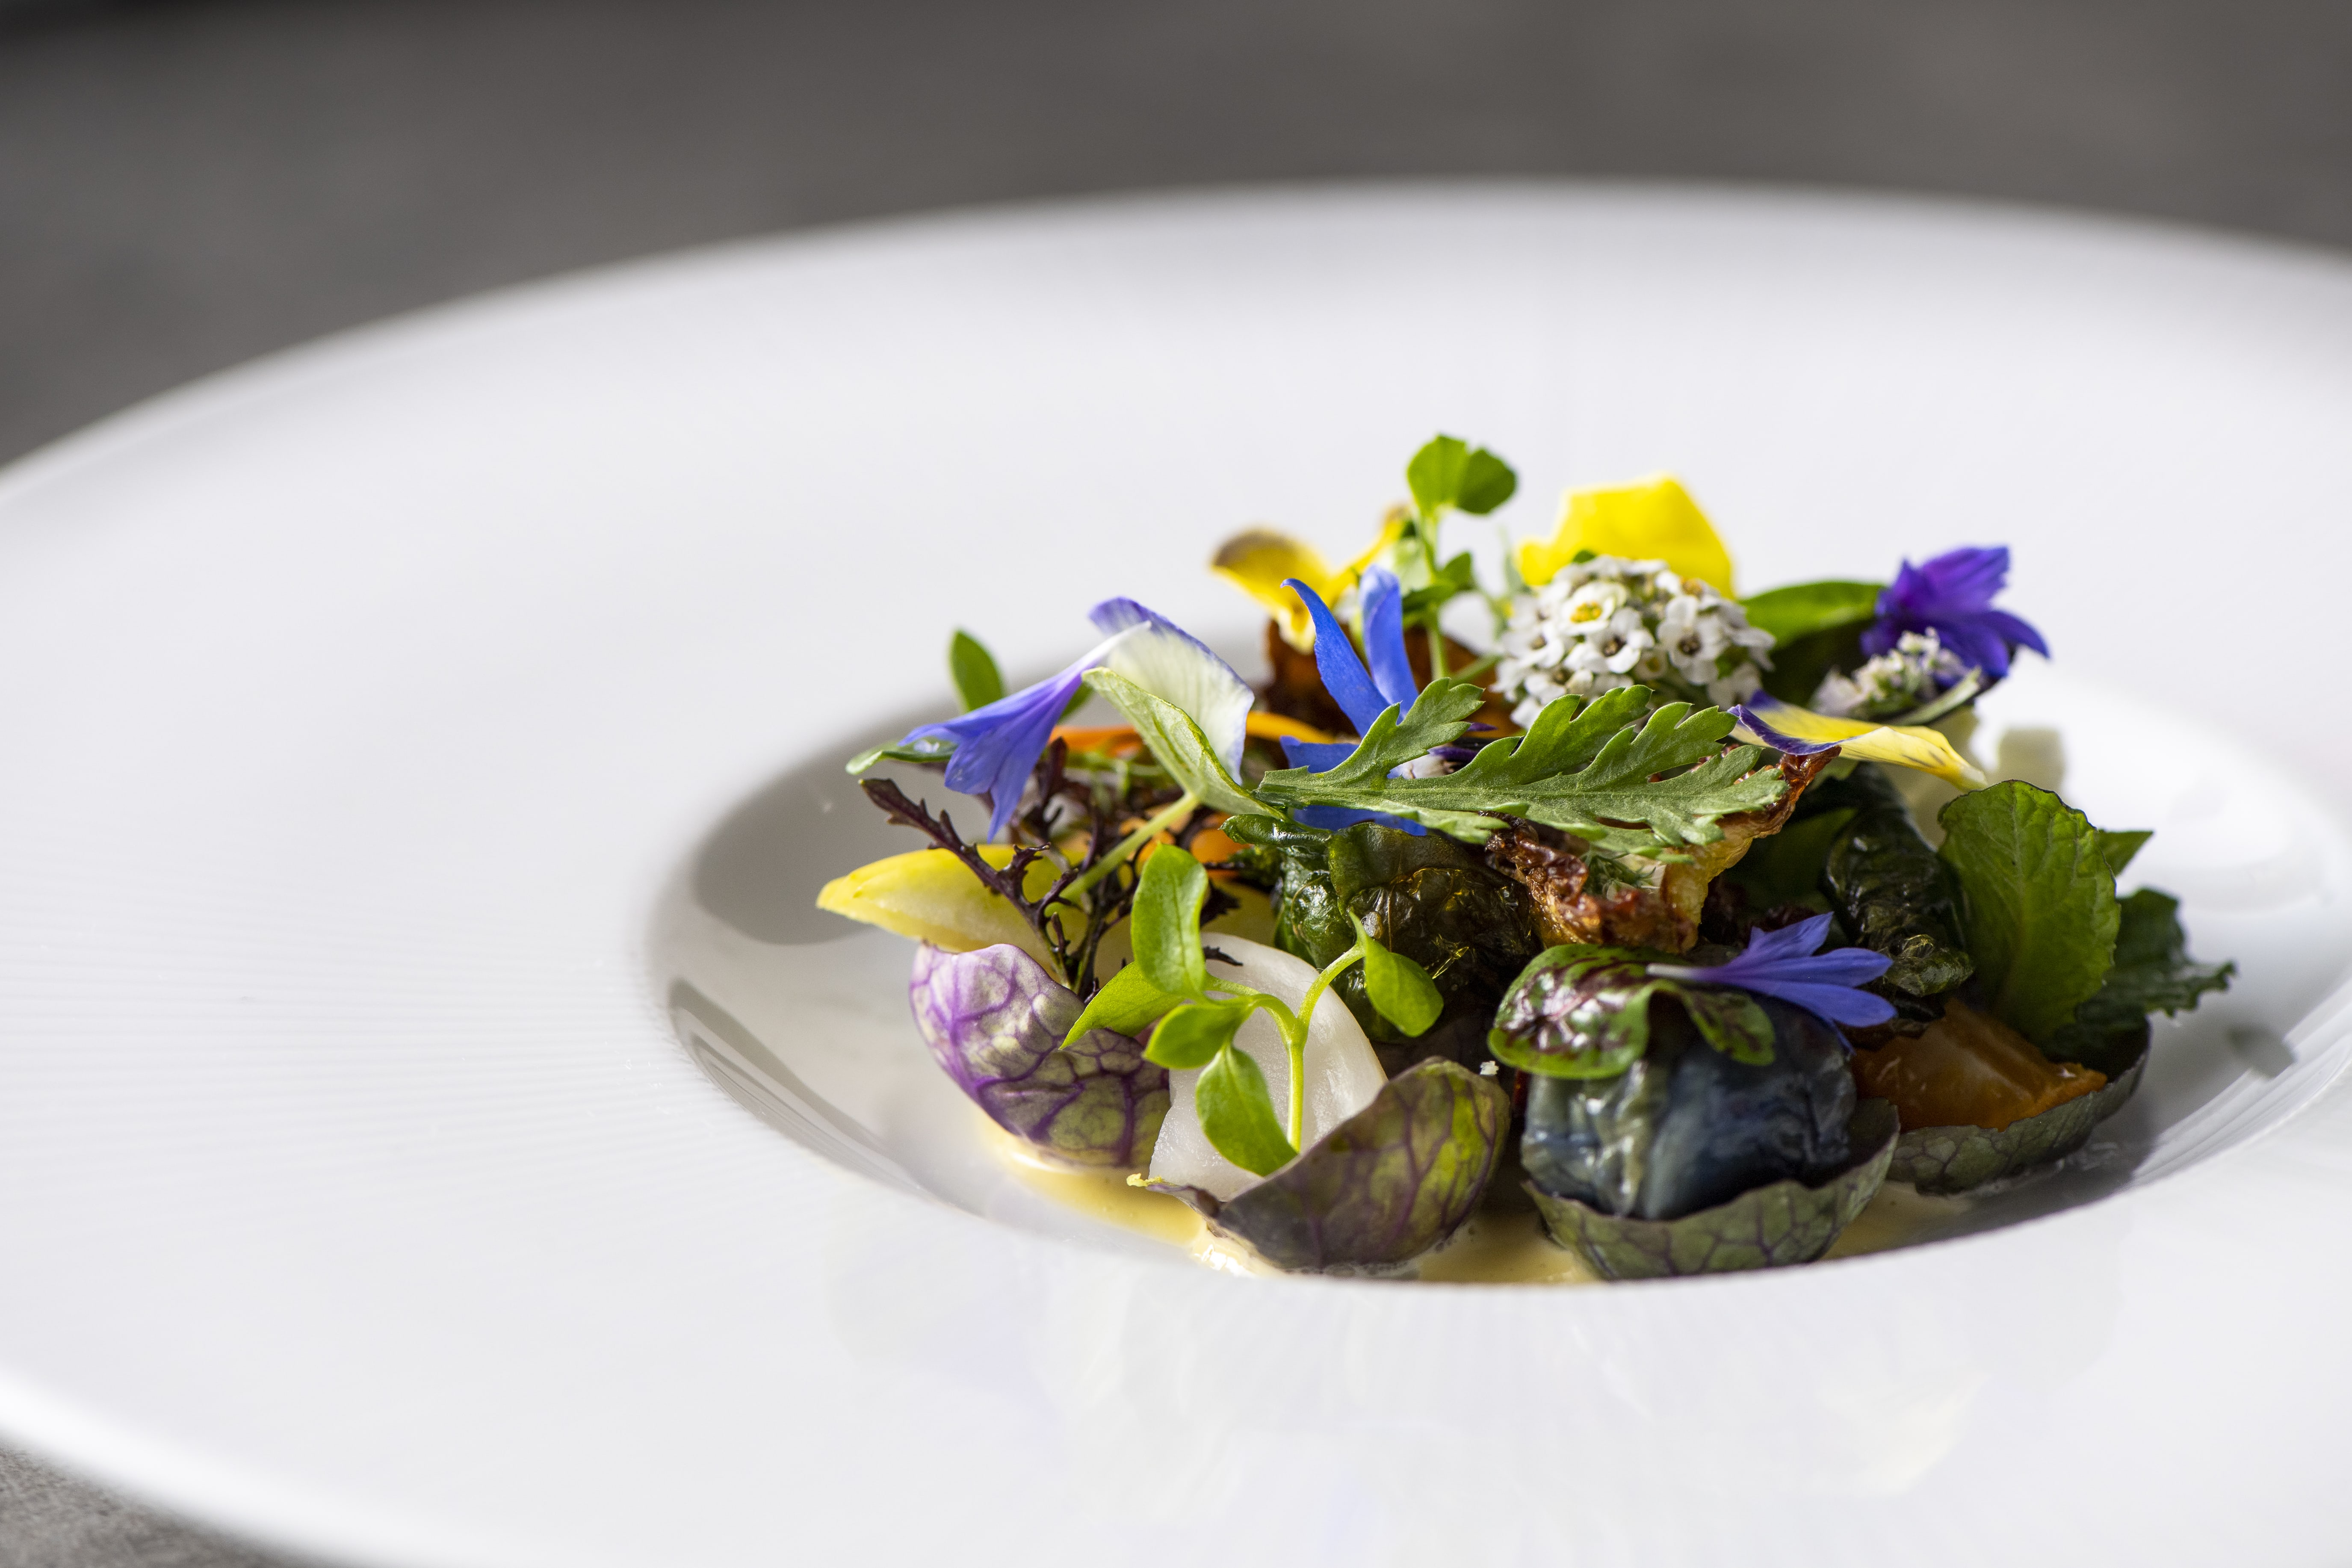 Manresa_Into_the_Vegetable_Garden_photo_credit_Marc_Fiorito-0001.jpg